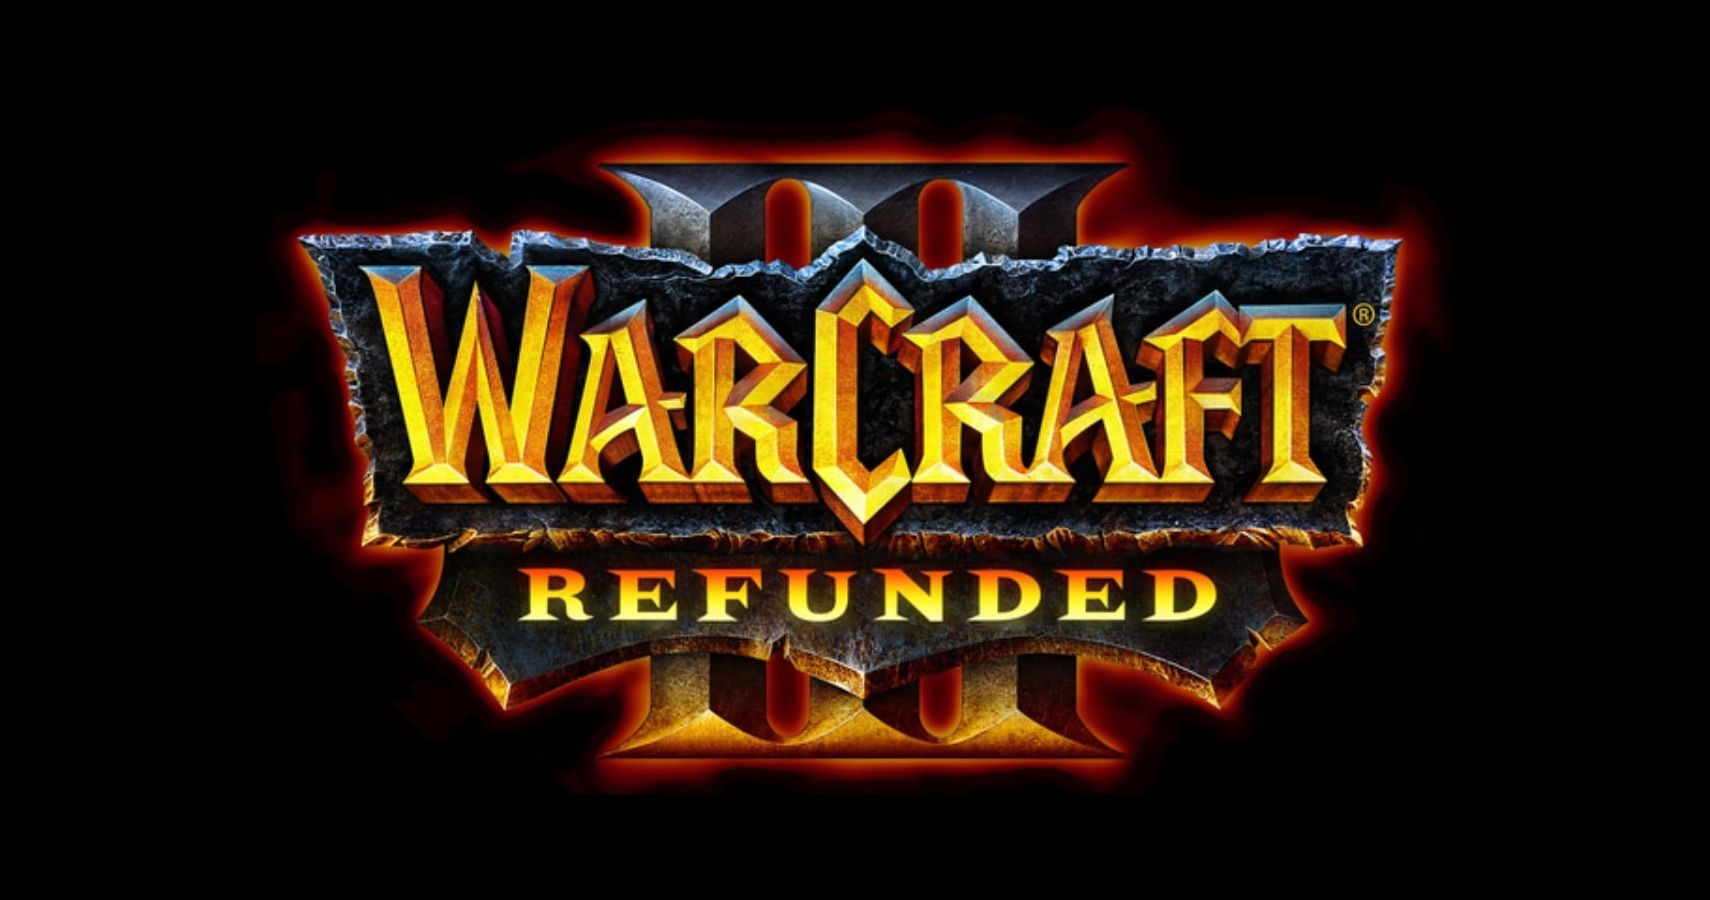 blizzard Warcraft refunded